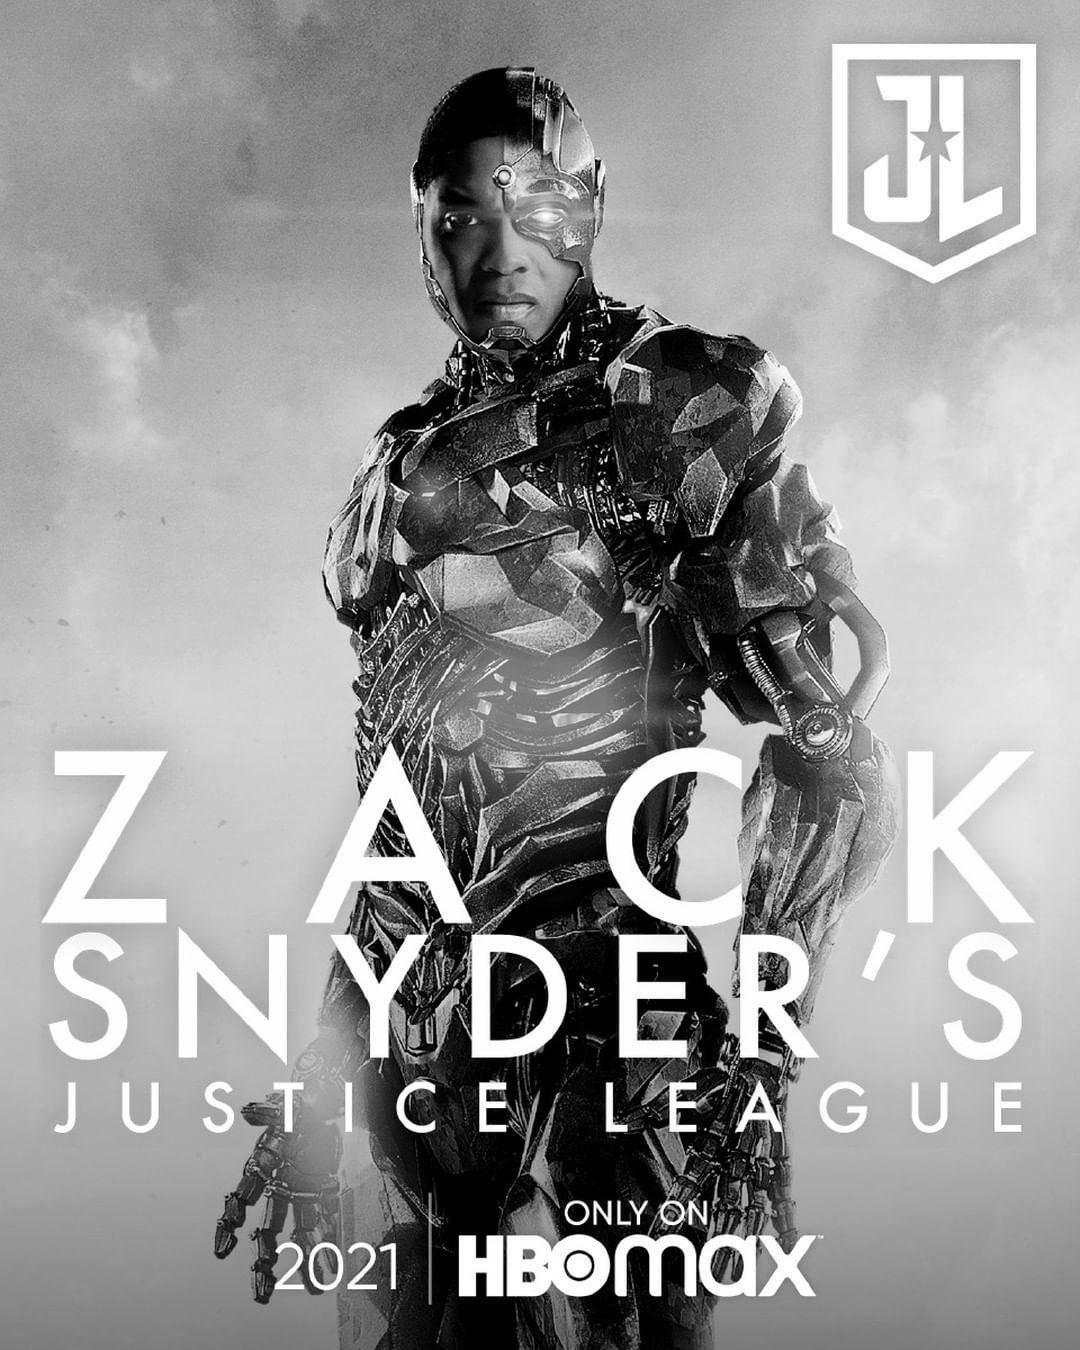 Zack Snyder's Justice League Poster - rayon, ray Fisher as Cyborg